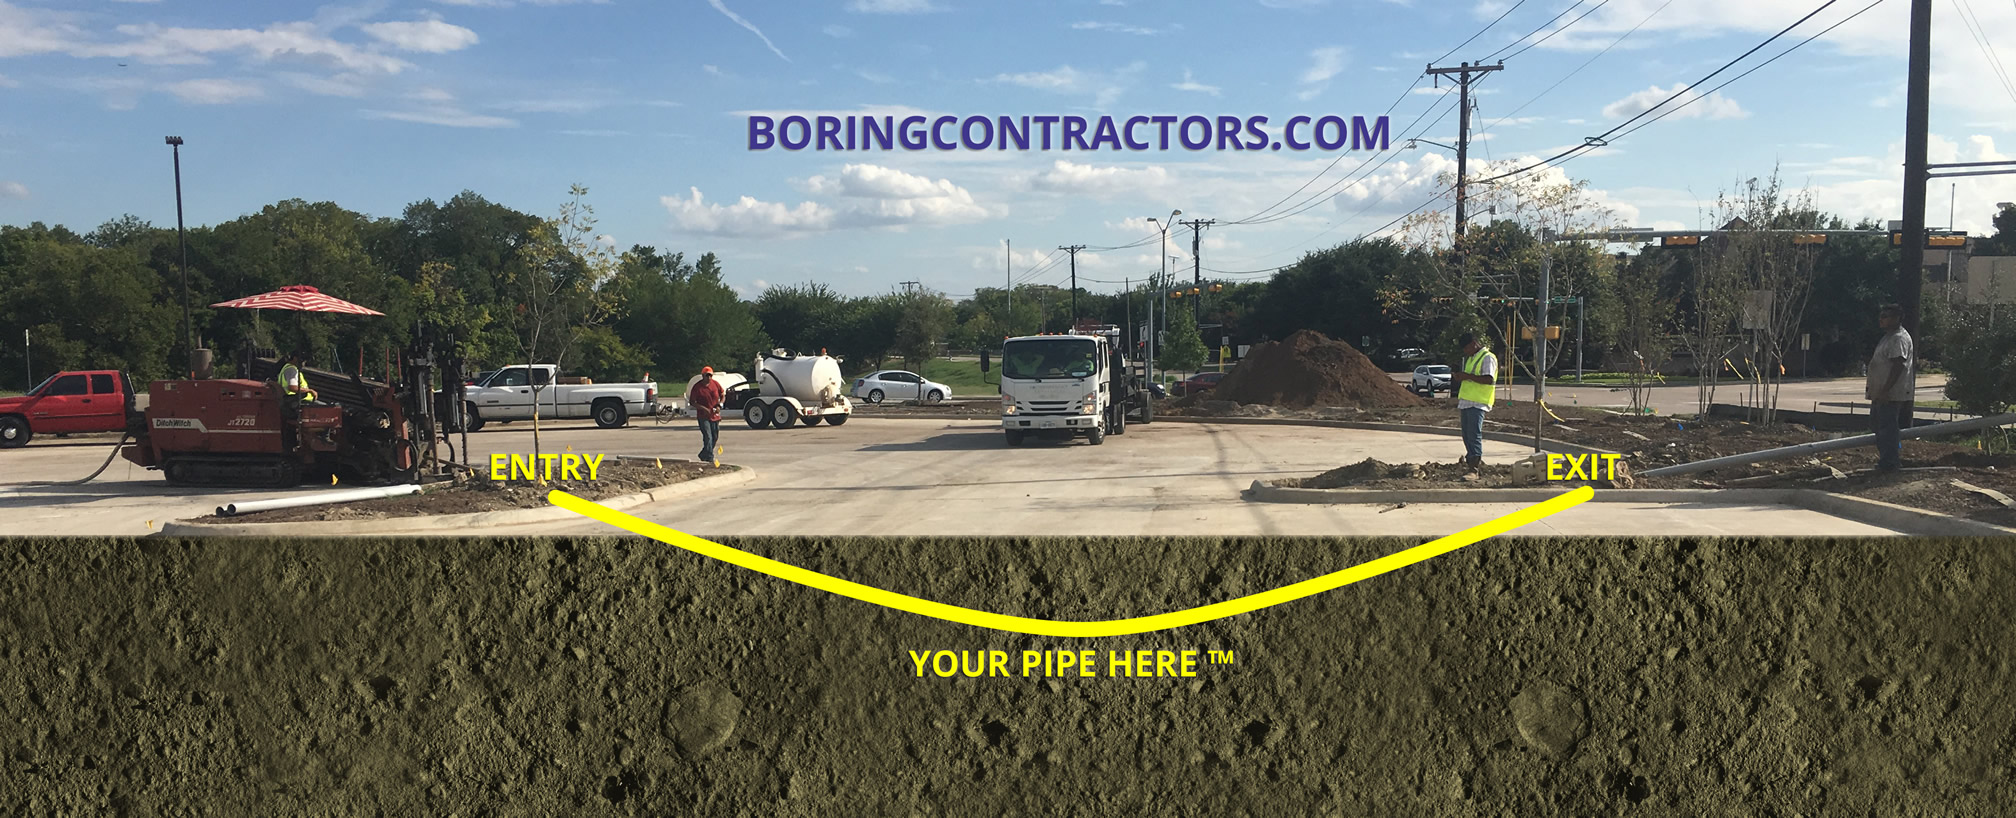 Boring Contractors, LLC | Boring Your Pipe Here